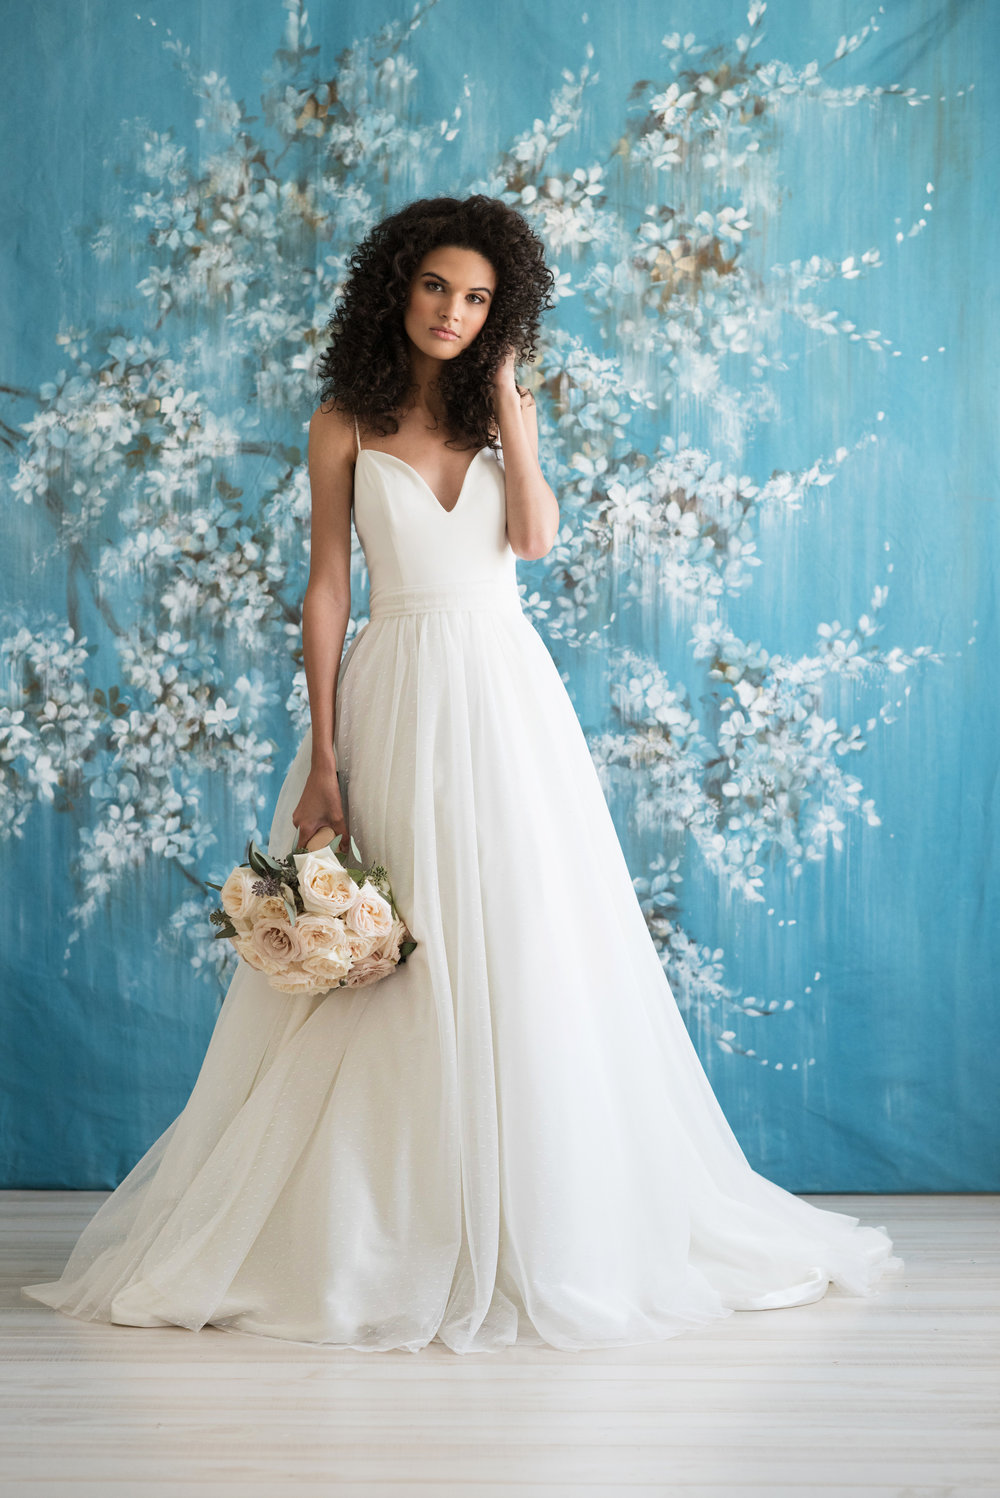 Old Fashioned Donate Wedding Gown Gift - All Wedding Dresses ...